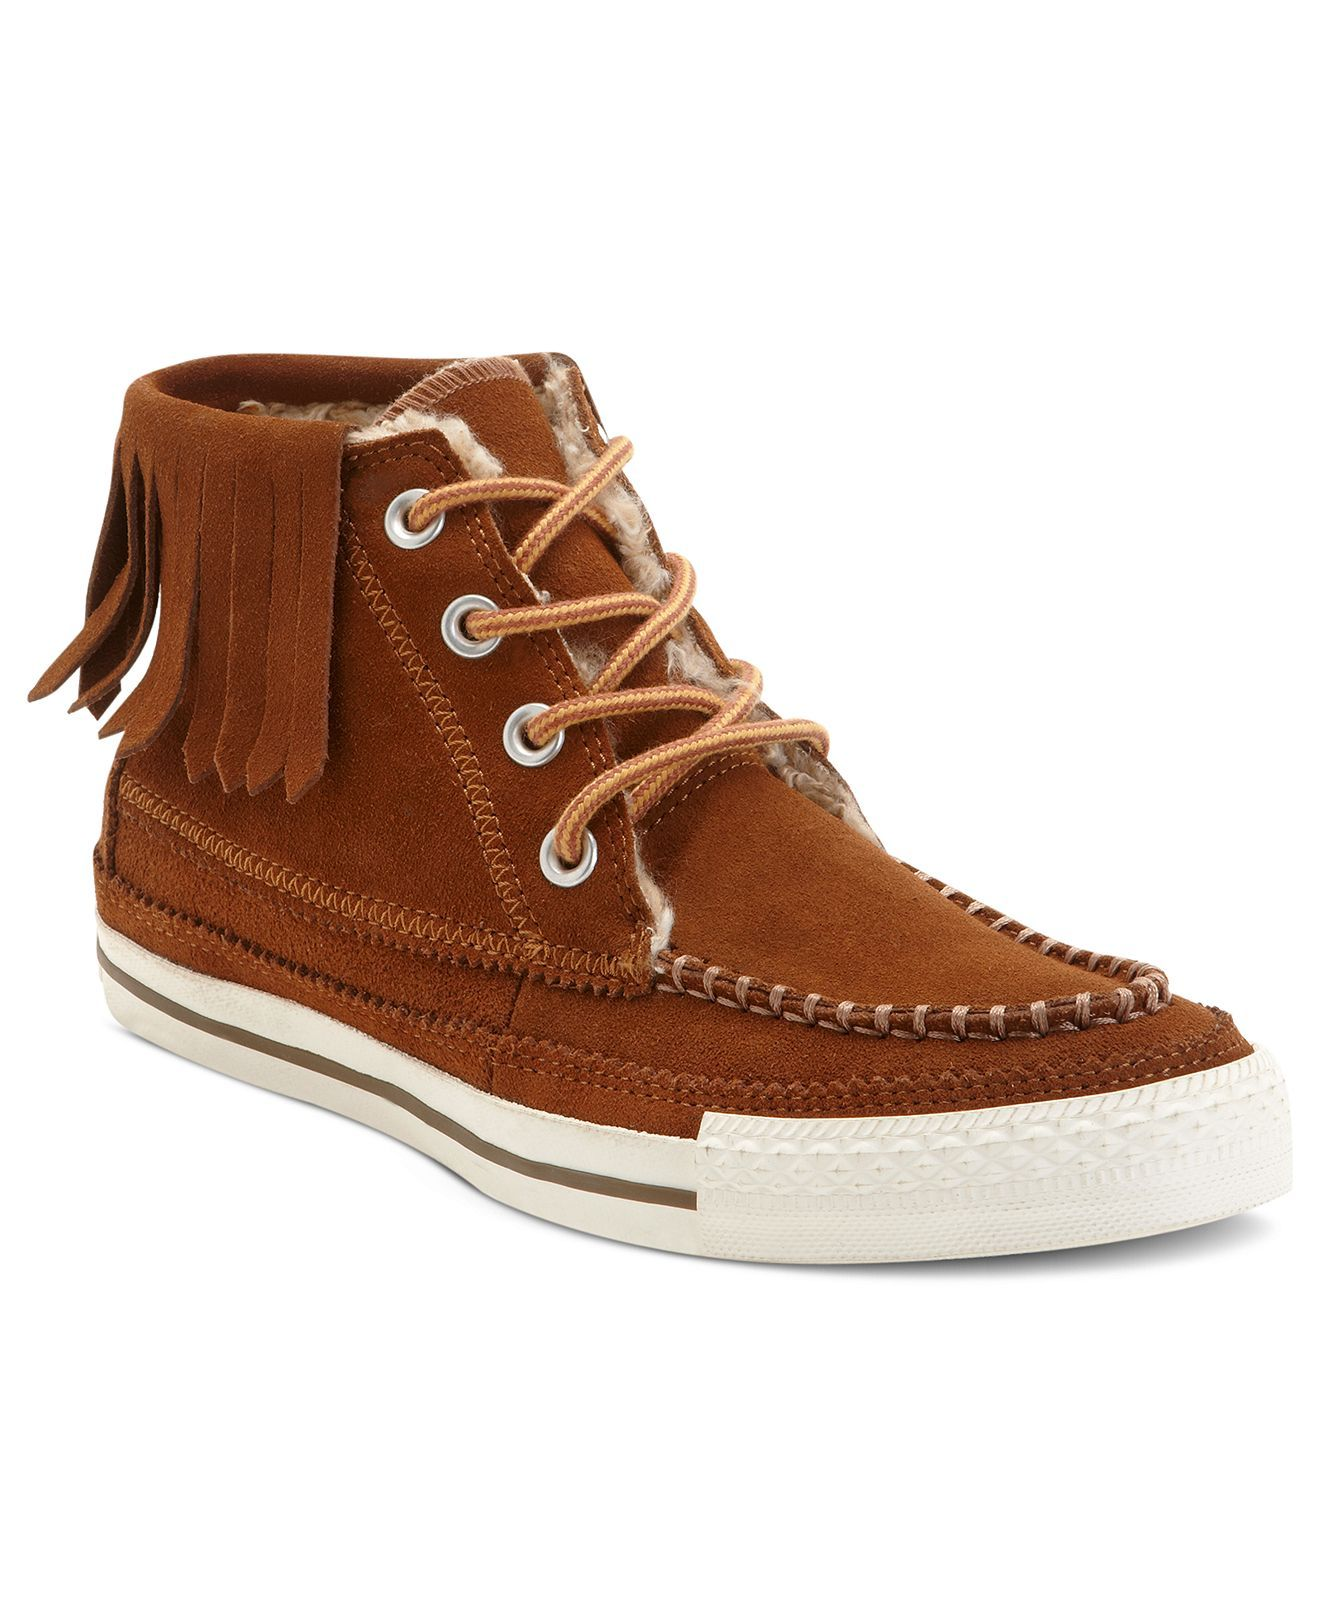 48875bb14aac Converse Women s Chuck Taylor All Star Moc Fringe Sneakers at Macy s ...